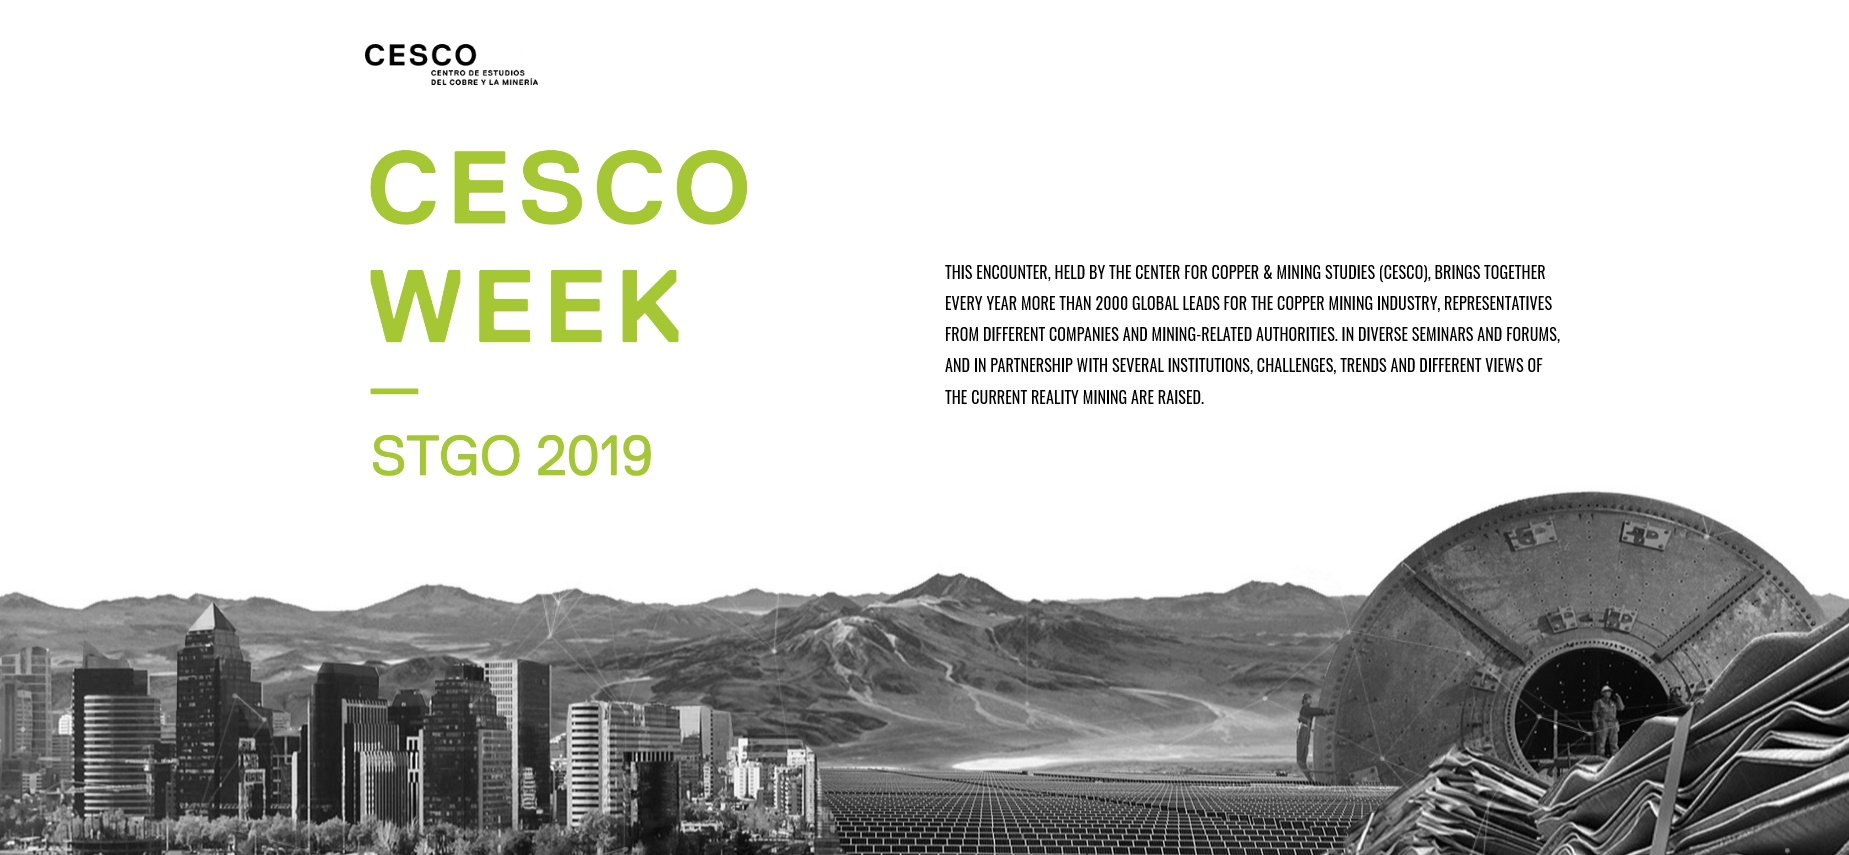 CESCO Week Santiago Chile